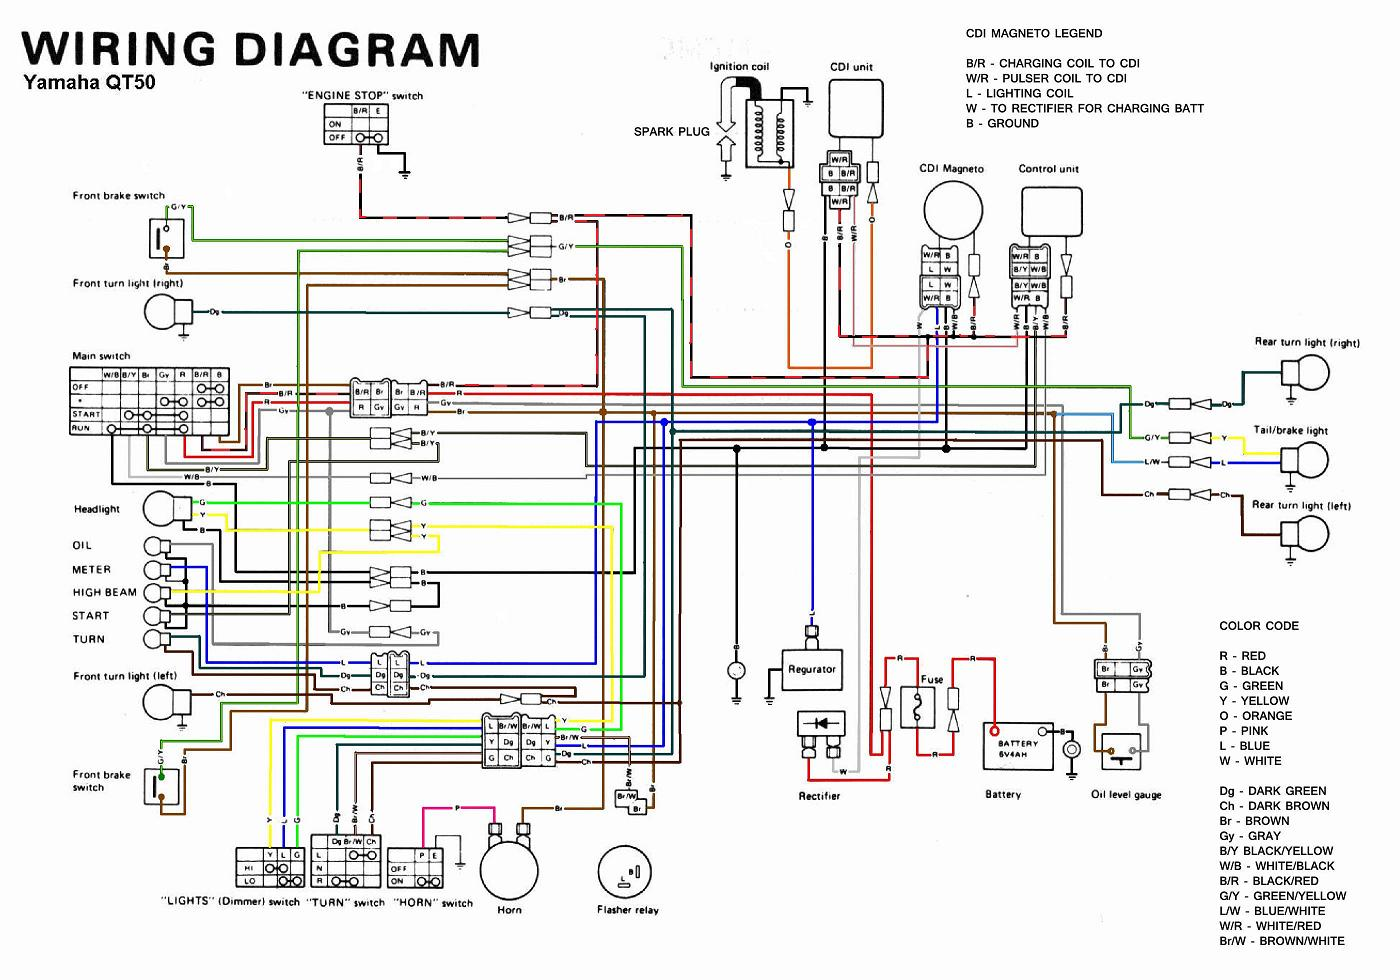 Yamaha Qt50 Wiring Diagram on triumph chopper wiring diagram